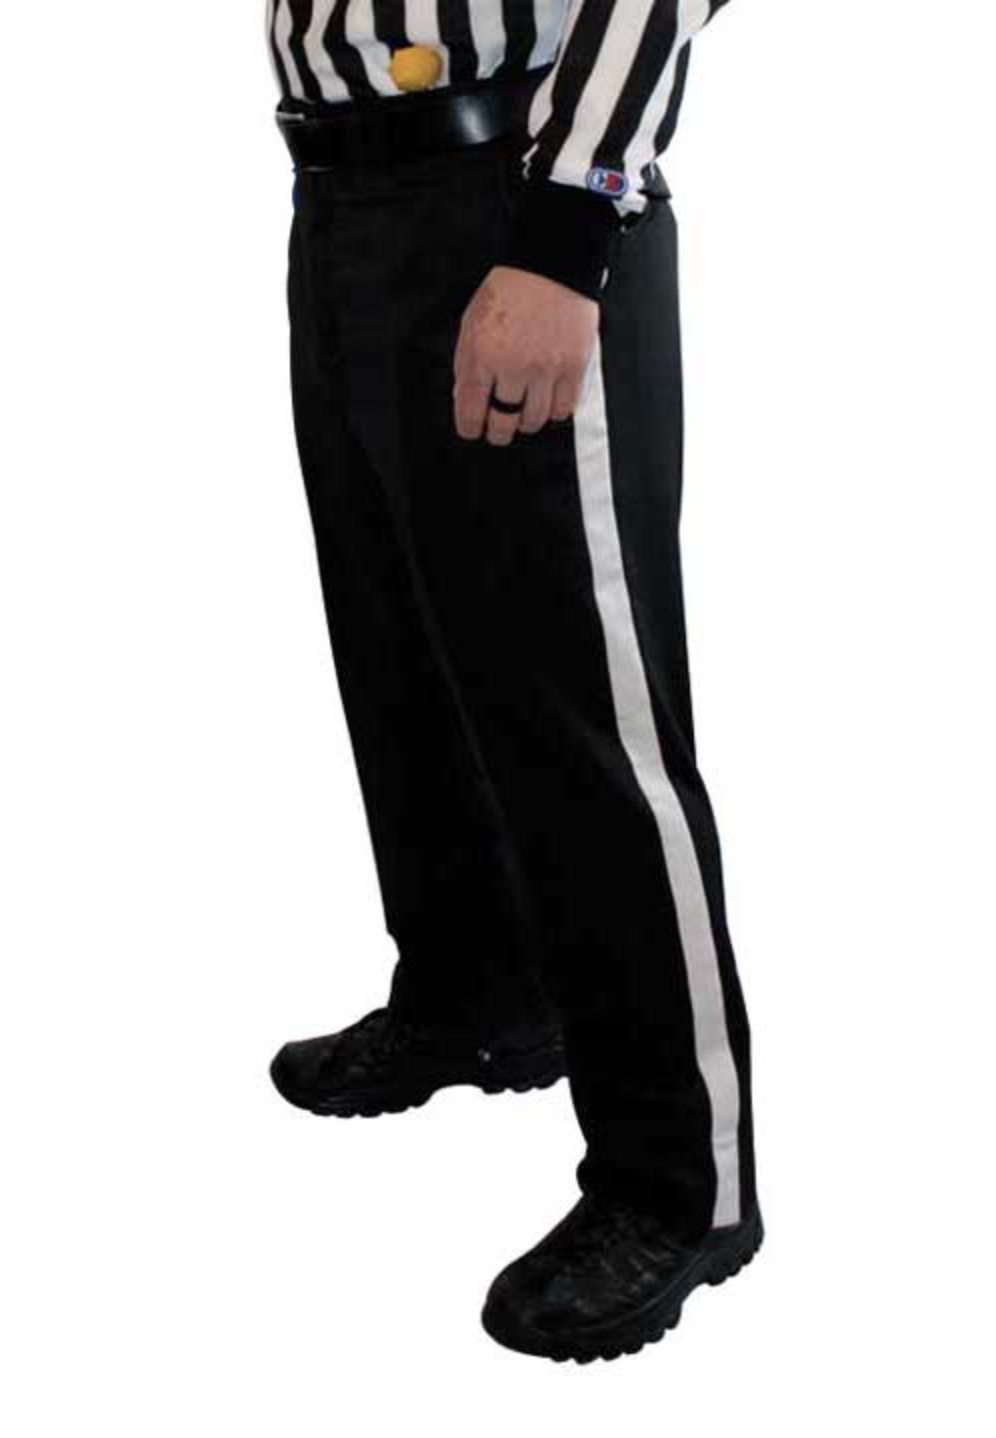 Cliff Keen All-Weather Stretch Football Pants MNFL57AW Referee Officials BEST